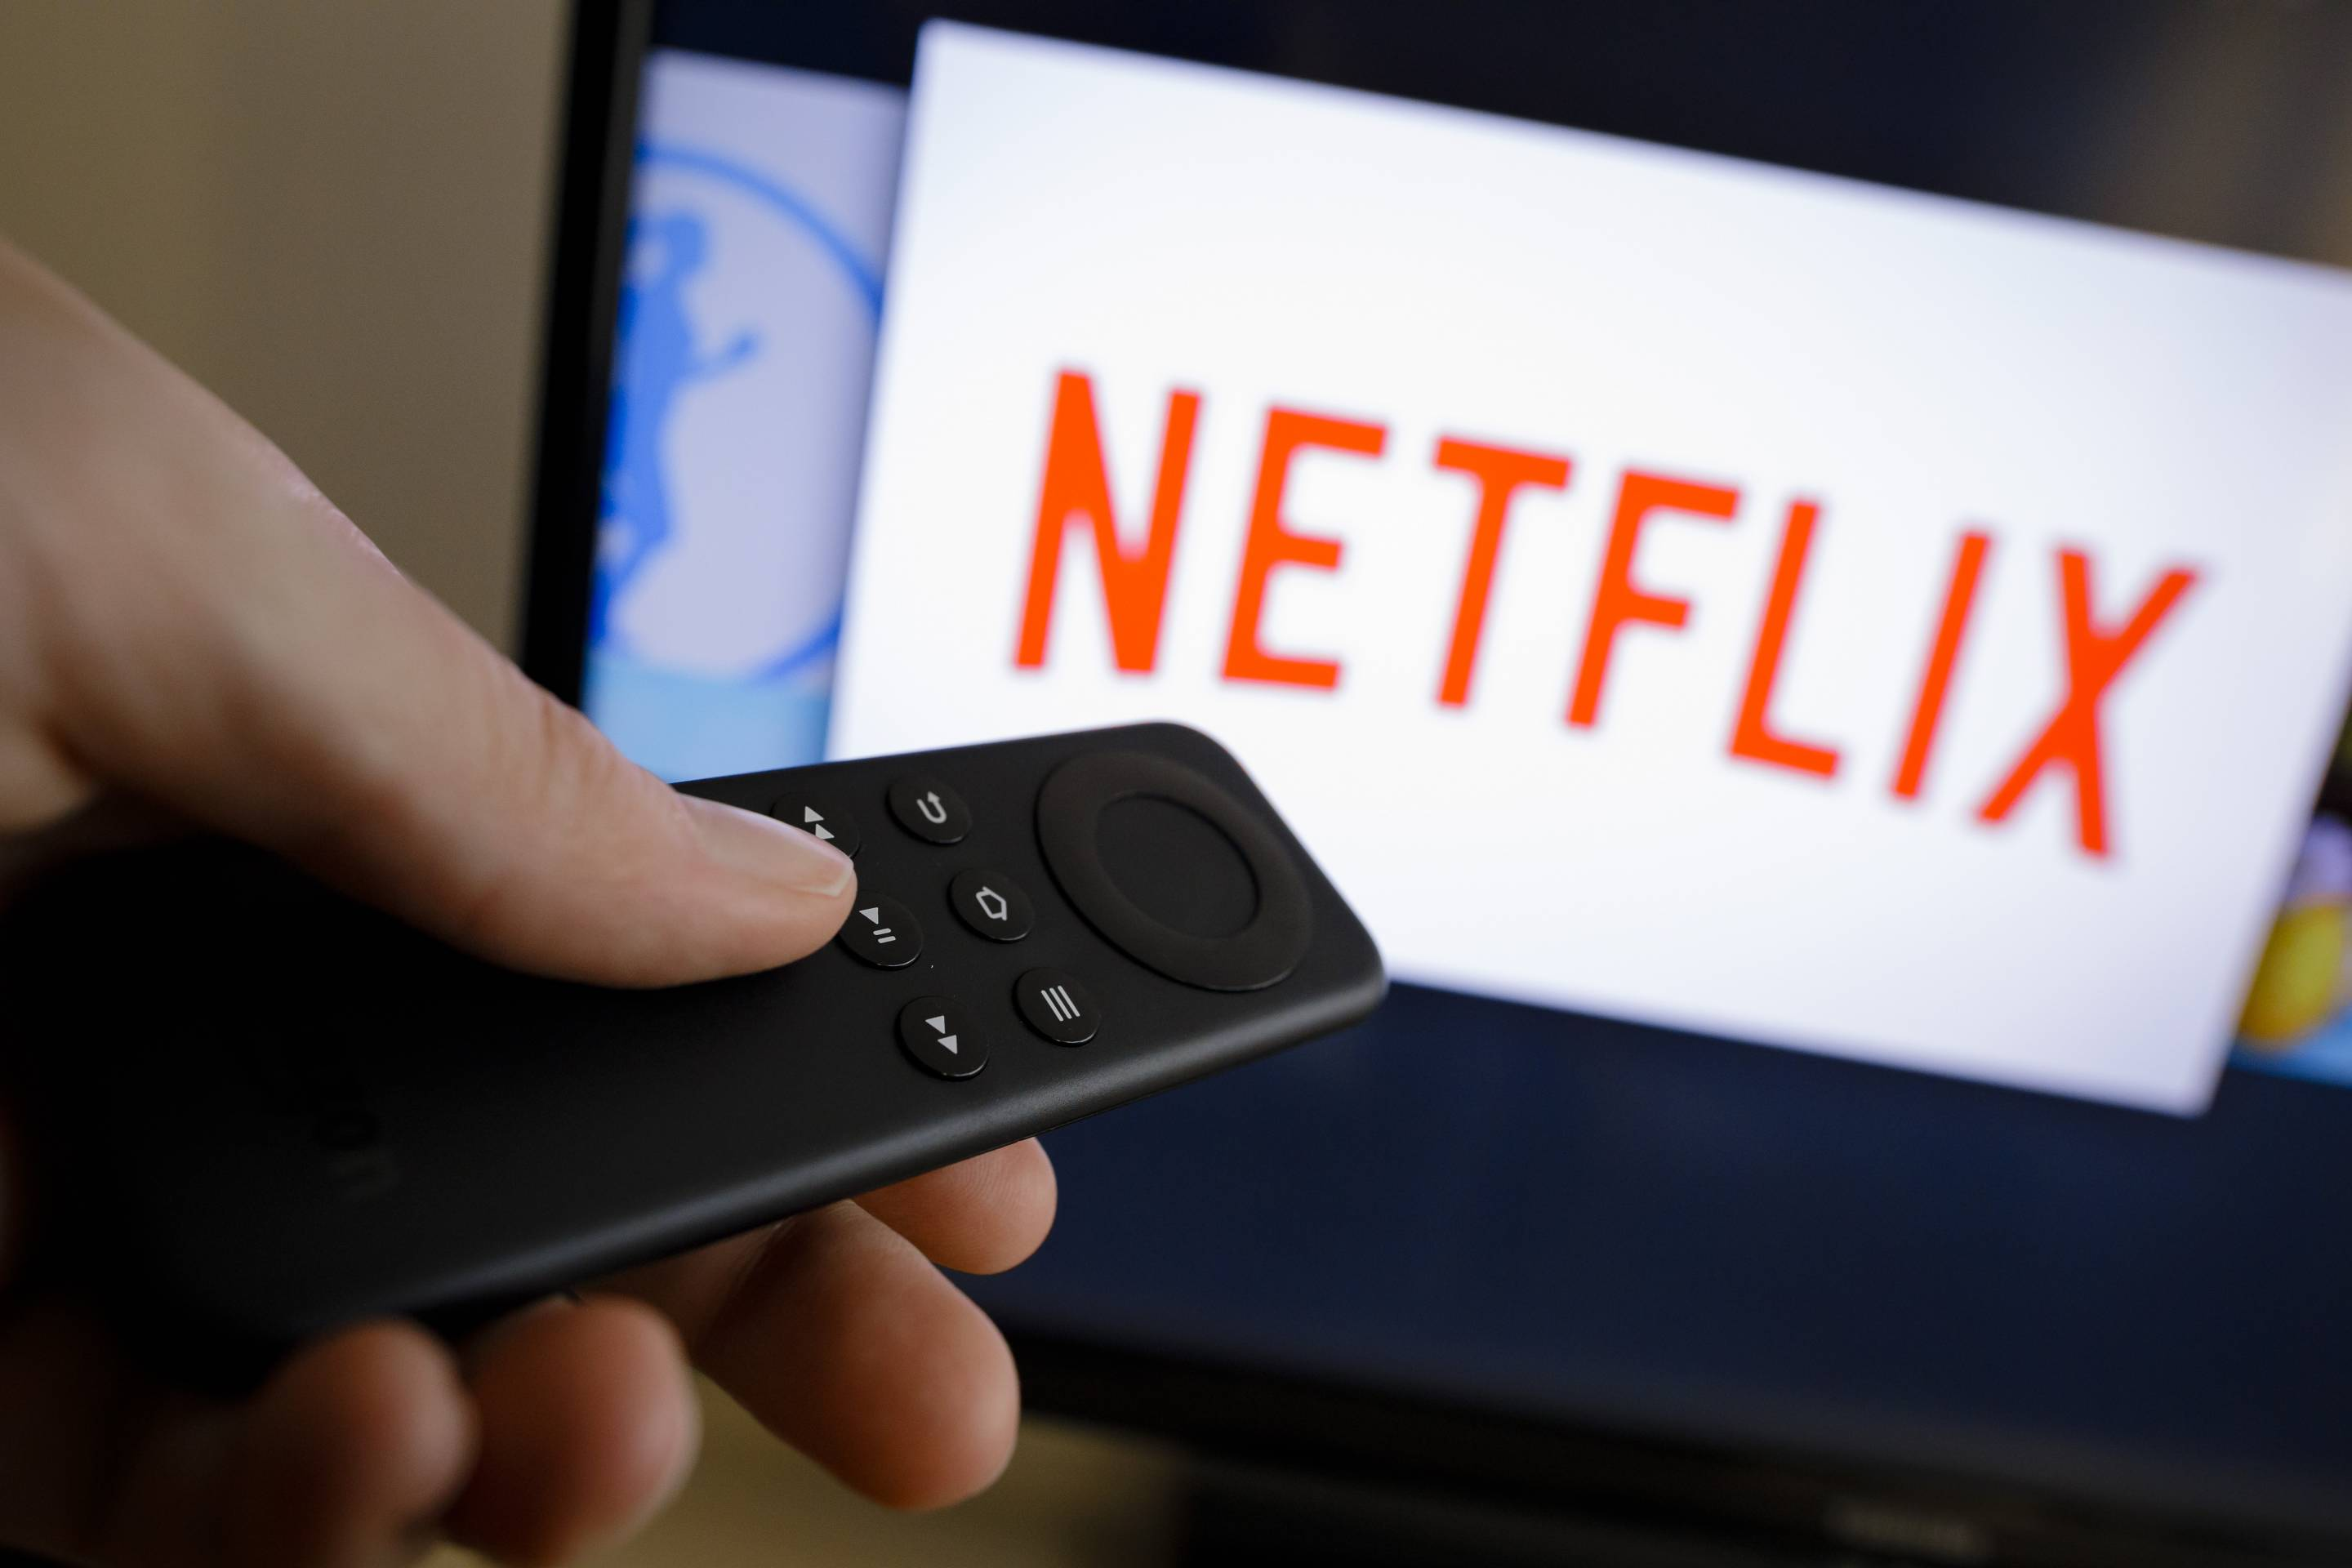 Netflix Consumes 15% of the World's Internet Bandwidth | Fortune